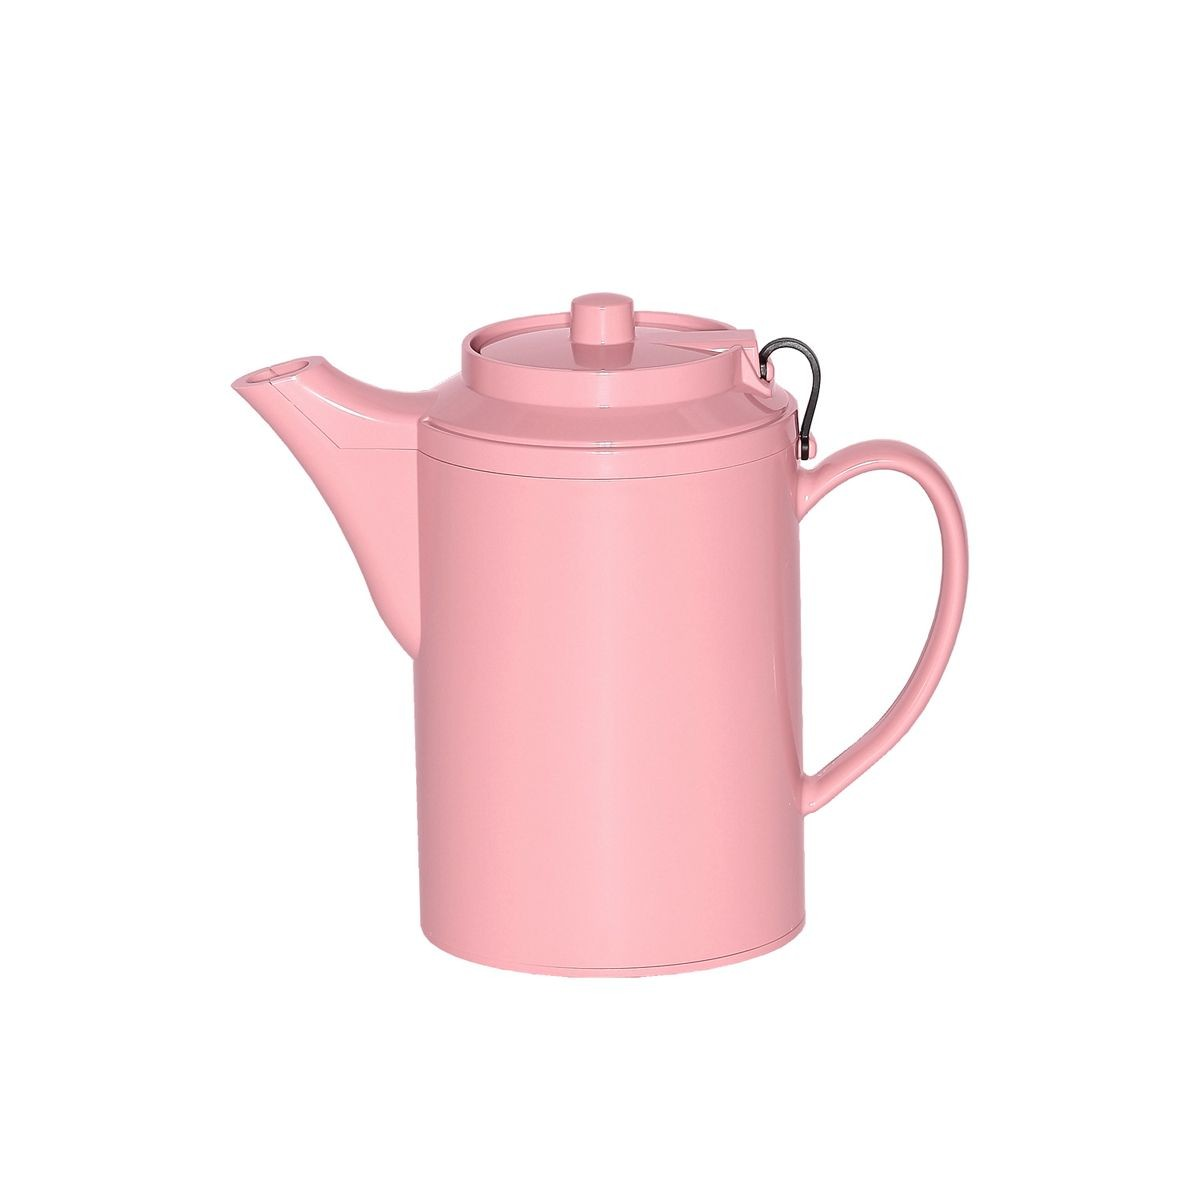 Service Ideas TST612MV Dripless Teapot with Tether, Mauve 16 oz.